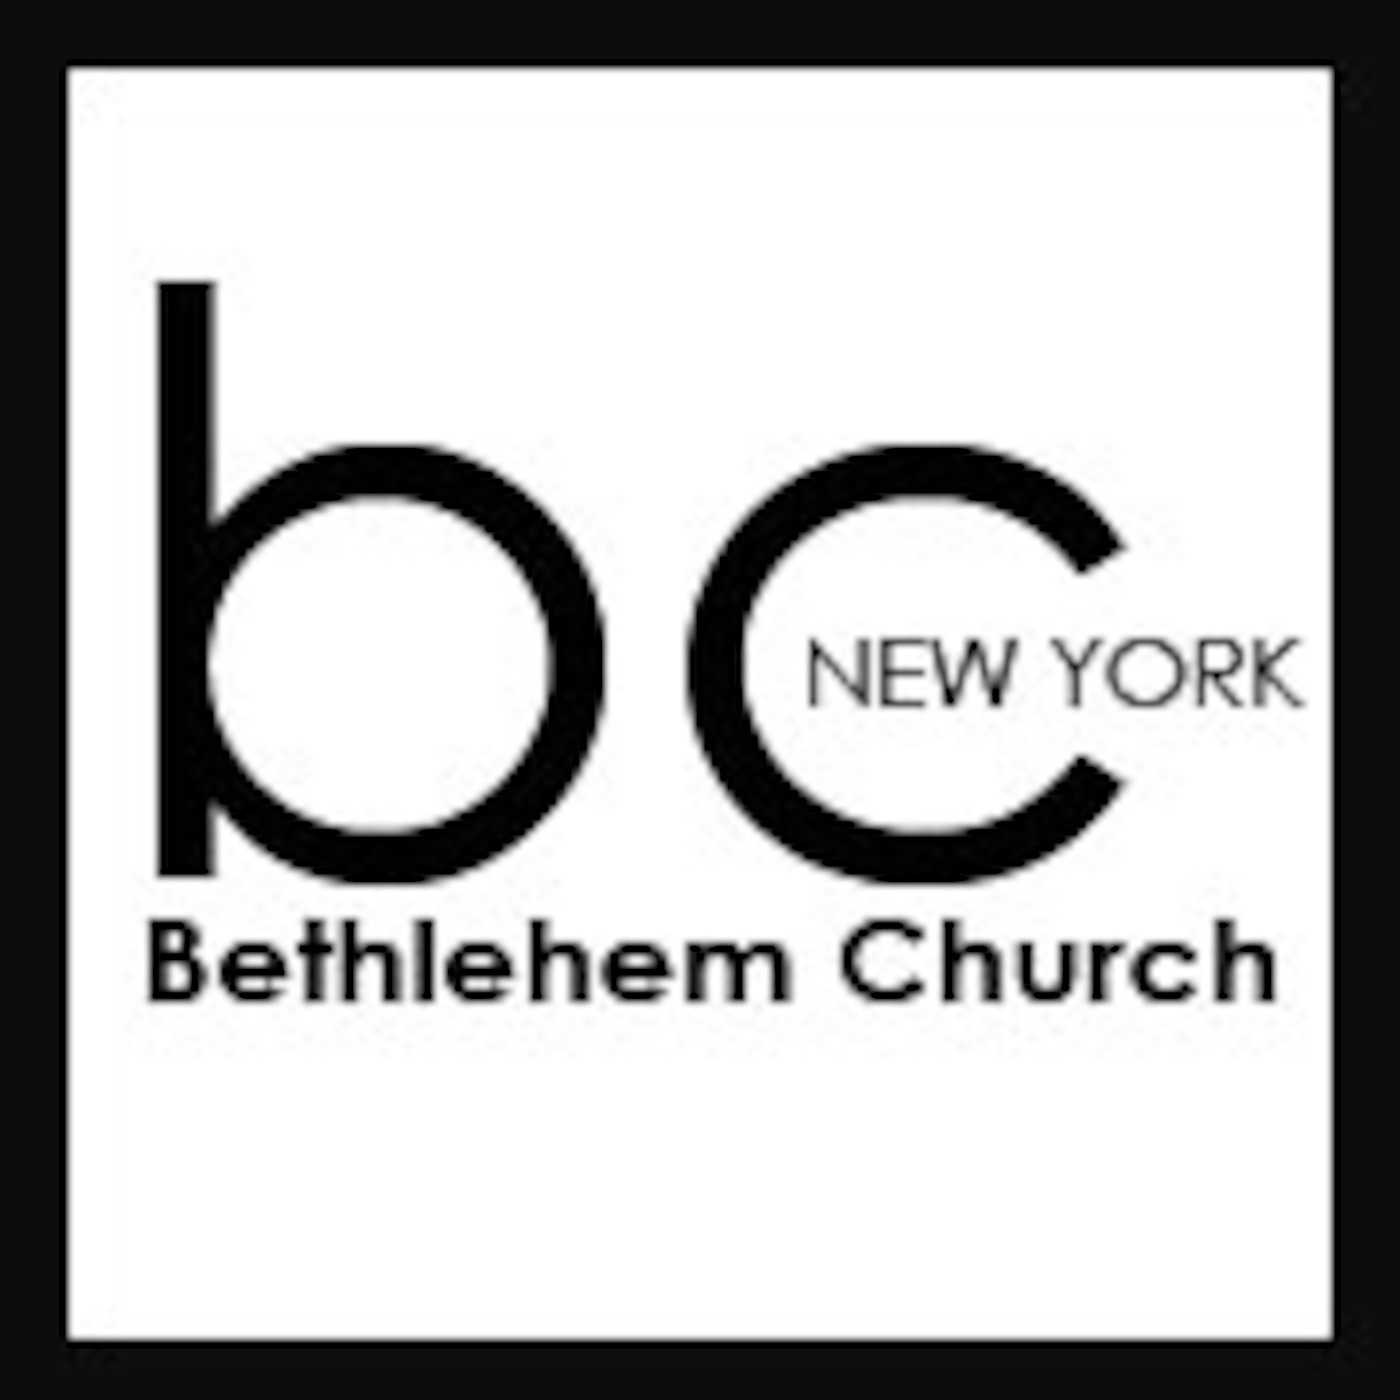 Bethlehem Church NYC